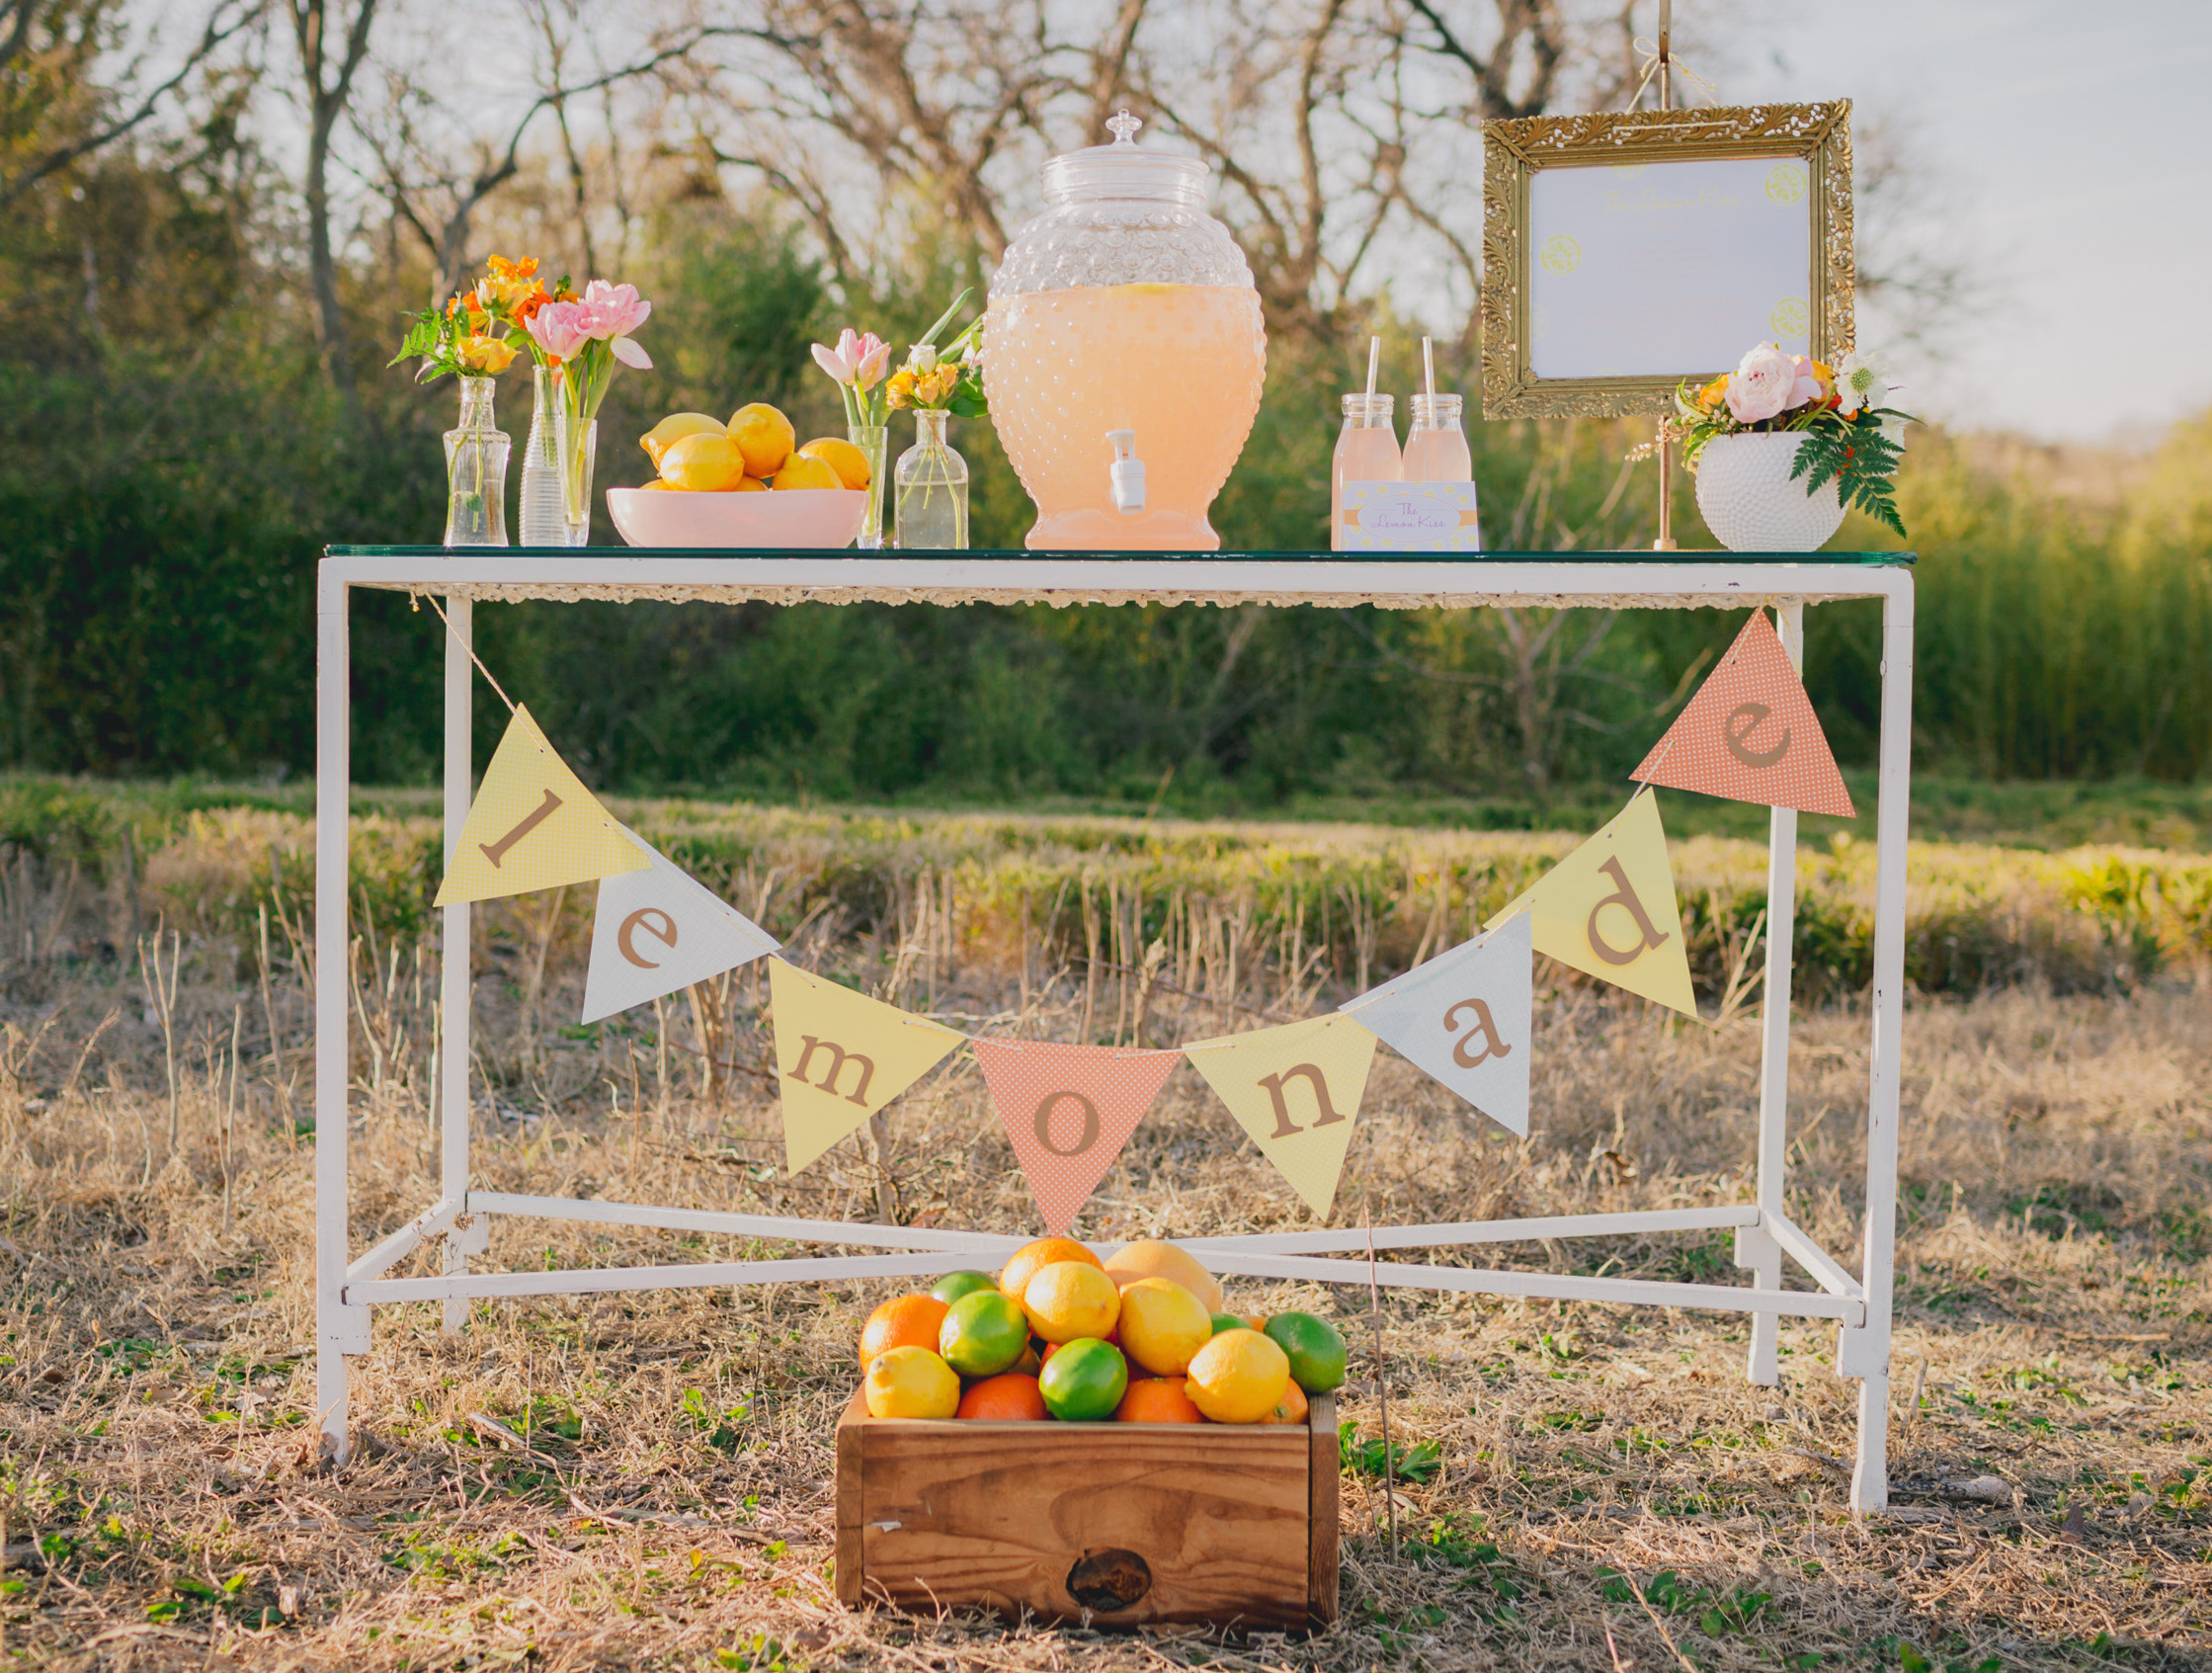 Chic Lemonade Stand + The Lemon Kiss Cocktail